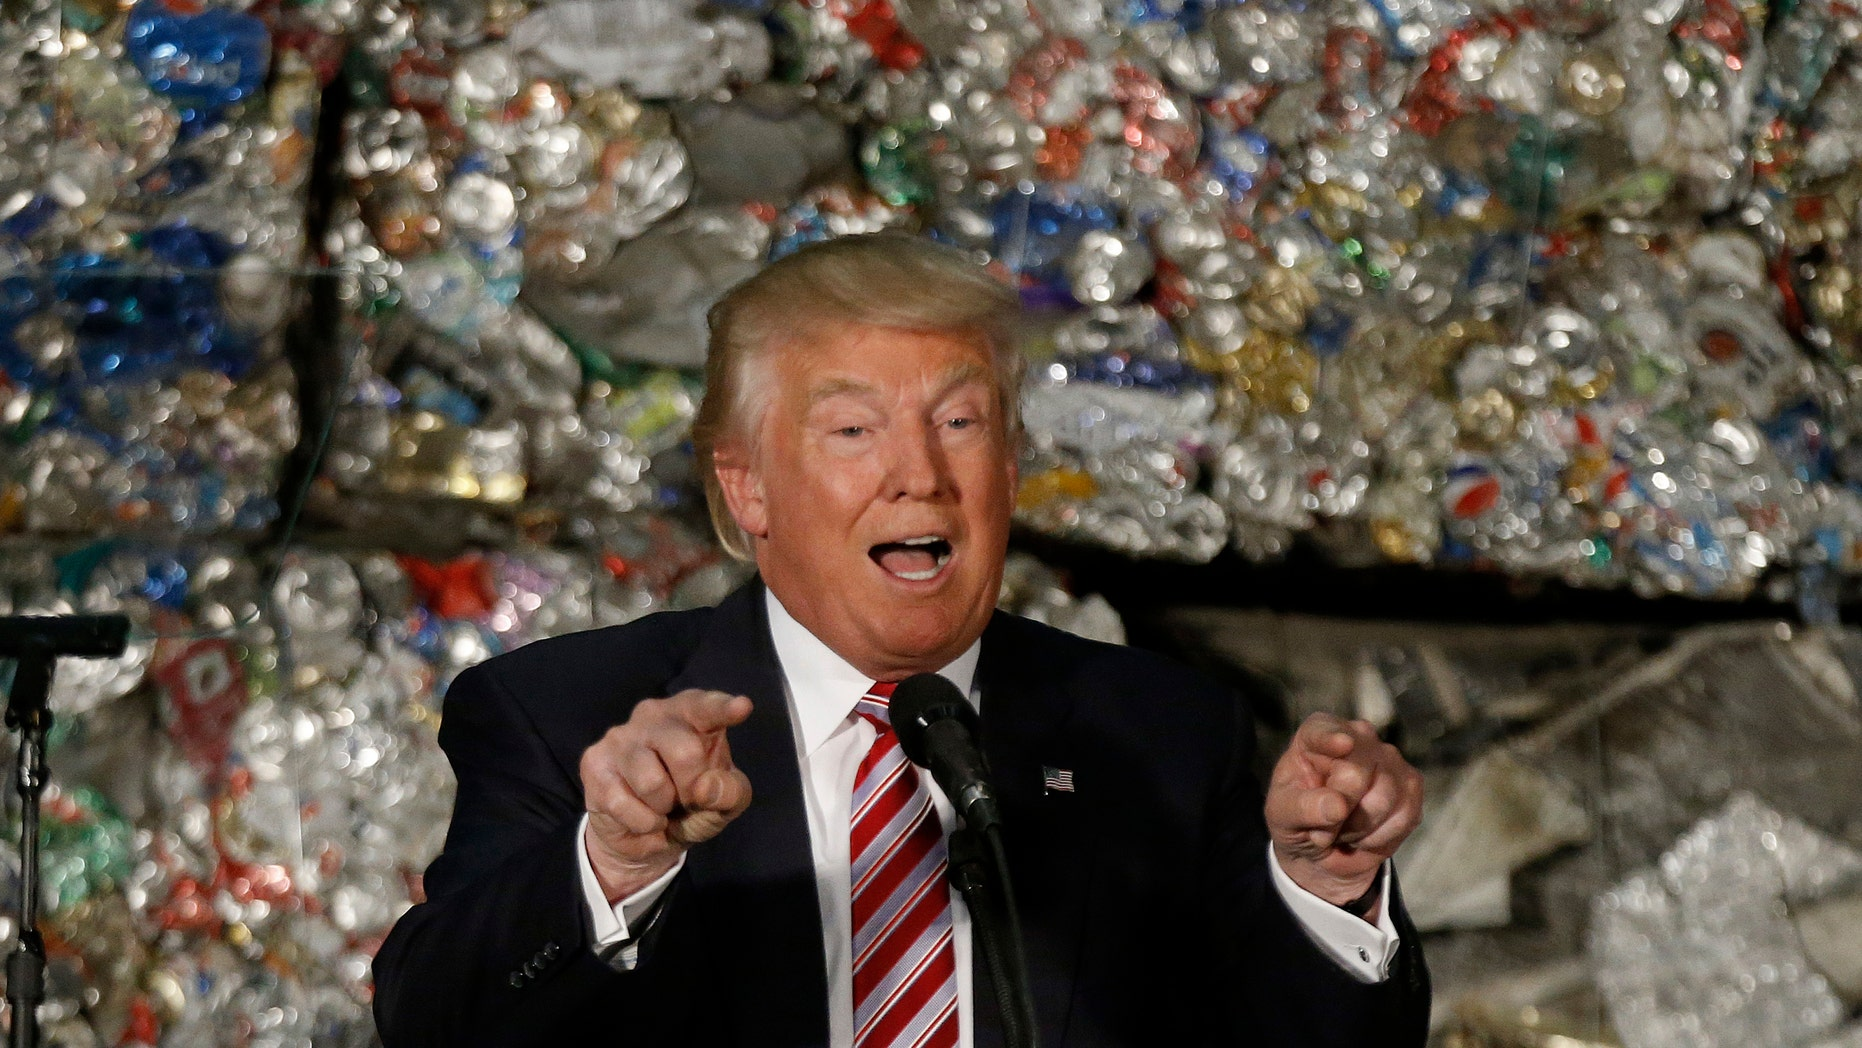 June 28, 2016: Republican presidential candidate Donald Trump speaks during a campaign stop at Alumisource, a metals recycling facility in Monessen, Pa.